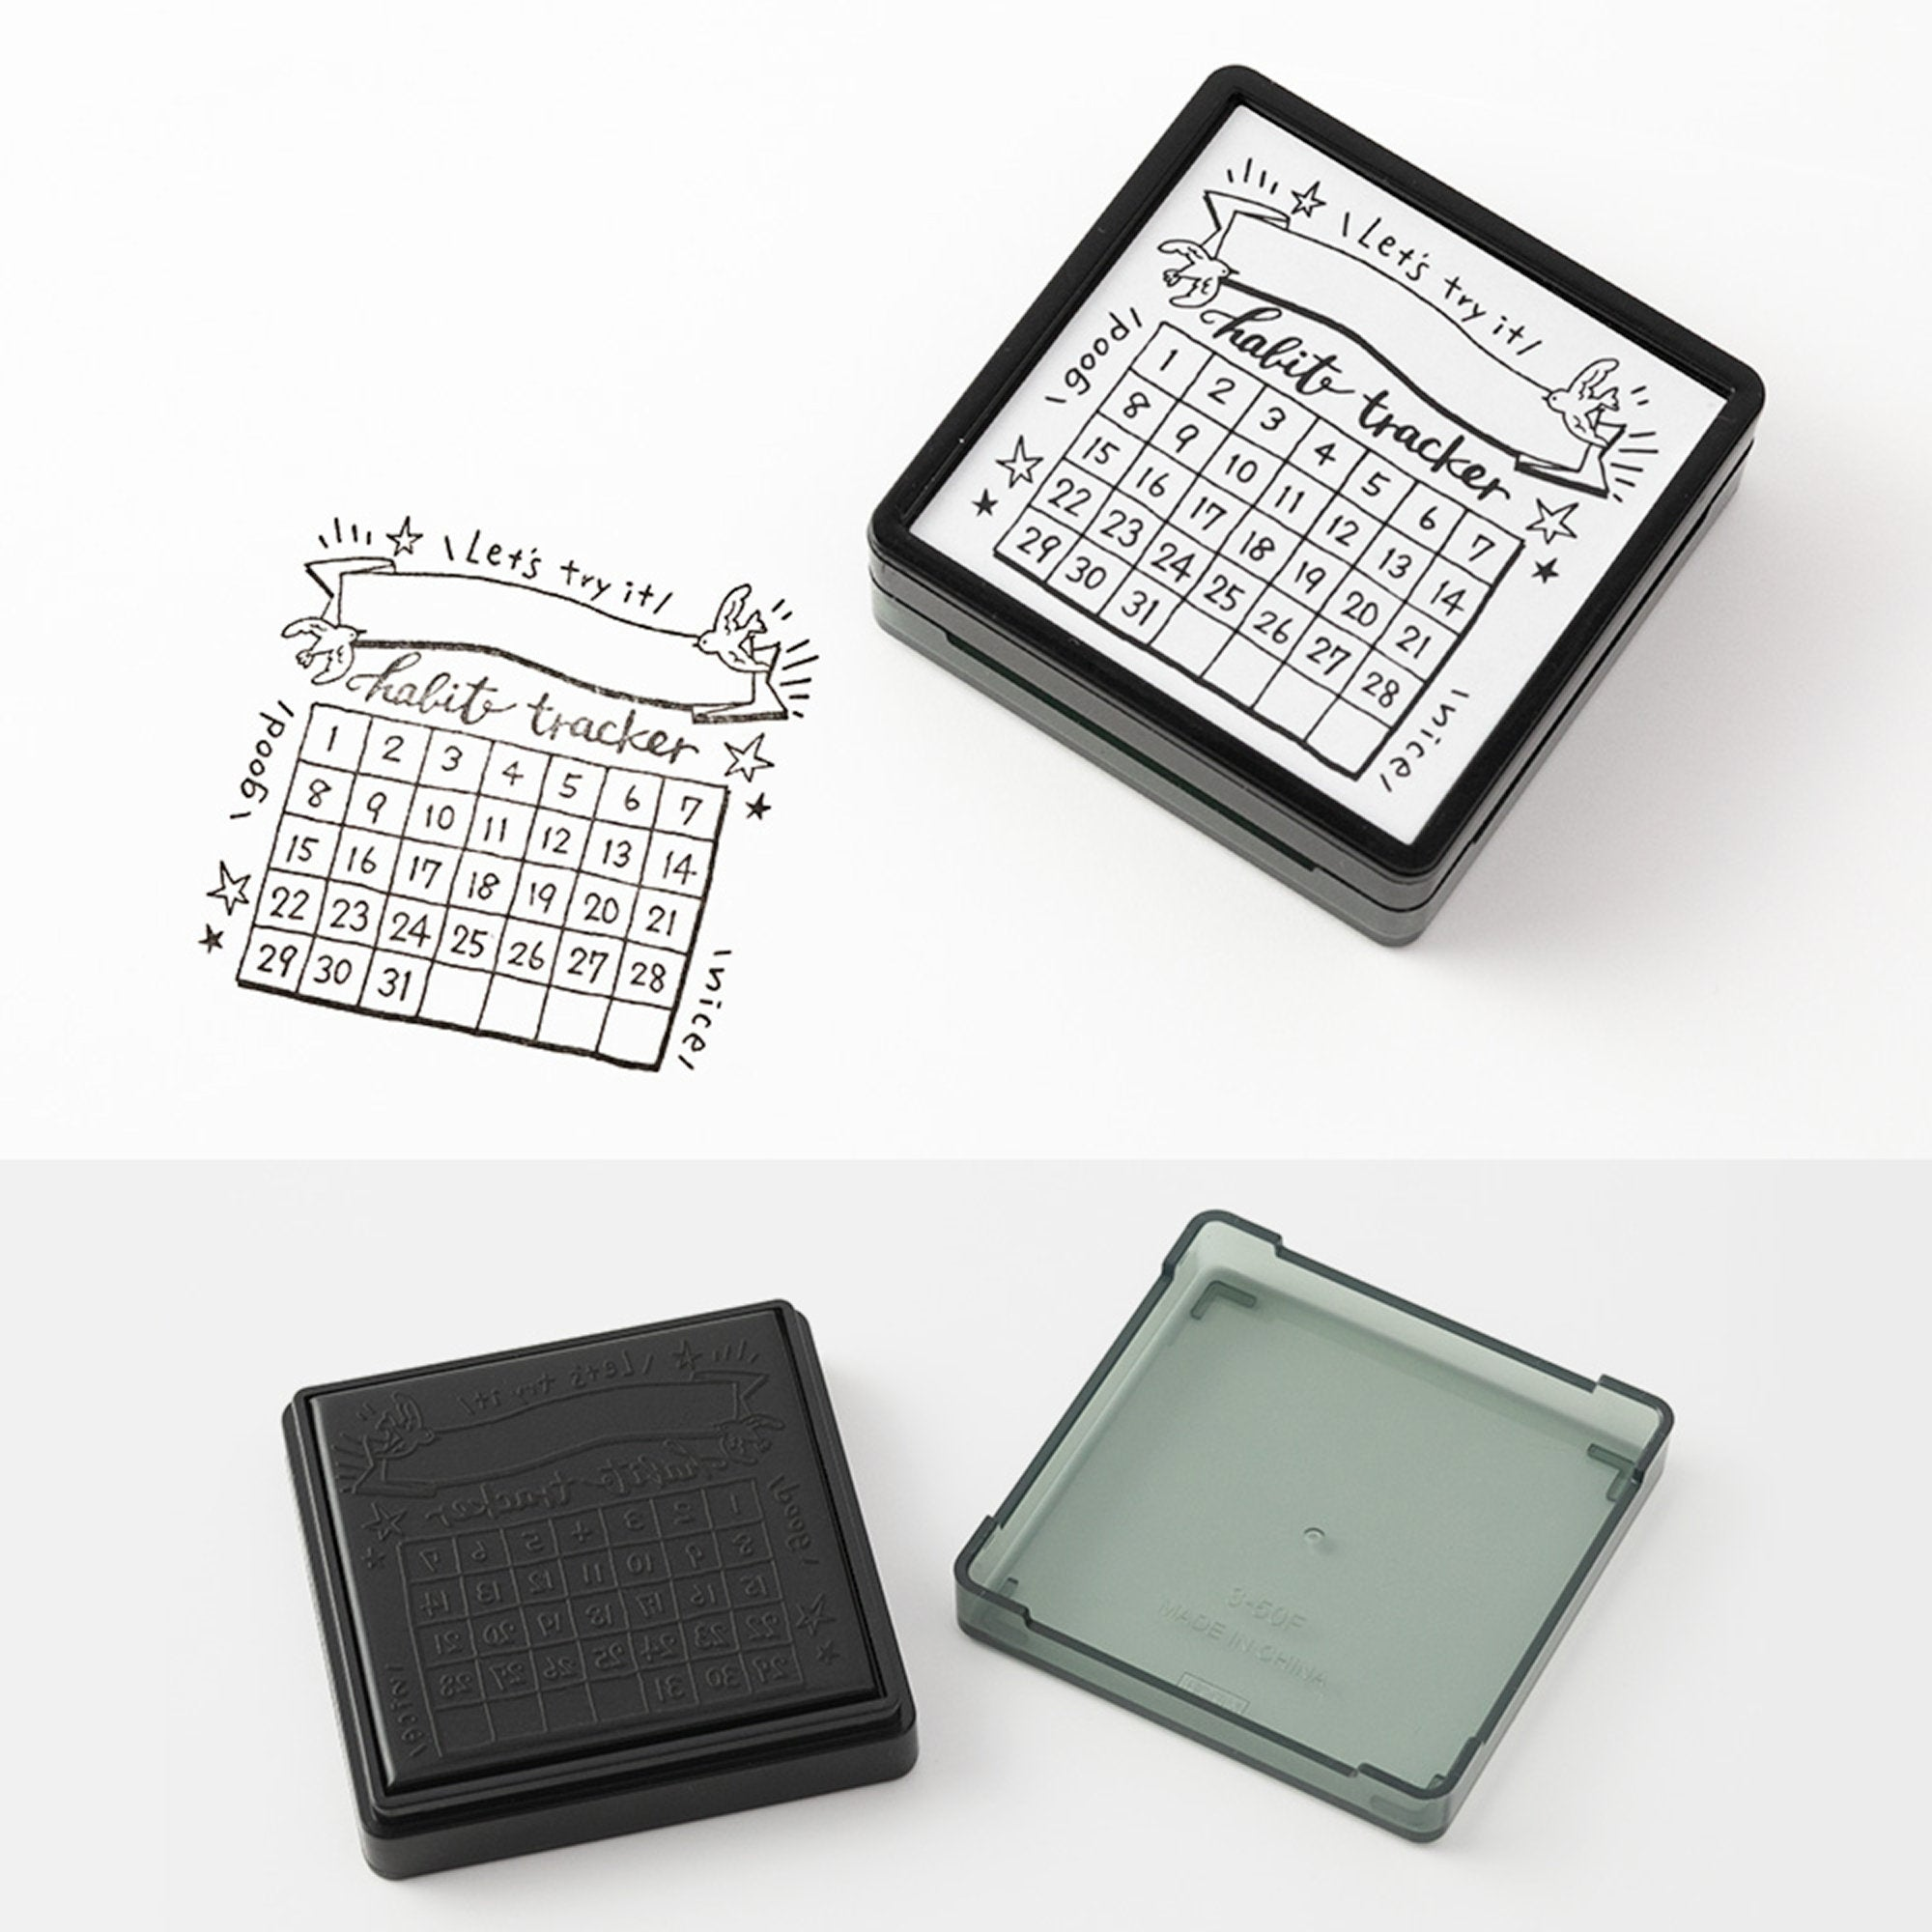 Midori Square Paintable Stamp Re-Inkable Self-Inking Stamp | HABIT TRACKER Green Package - The Stationery Life!